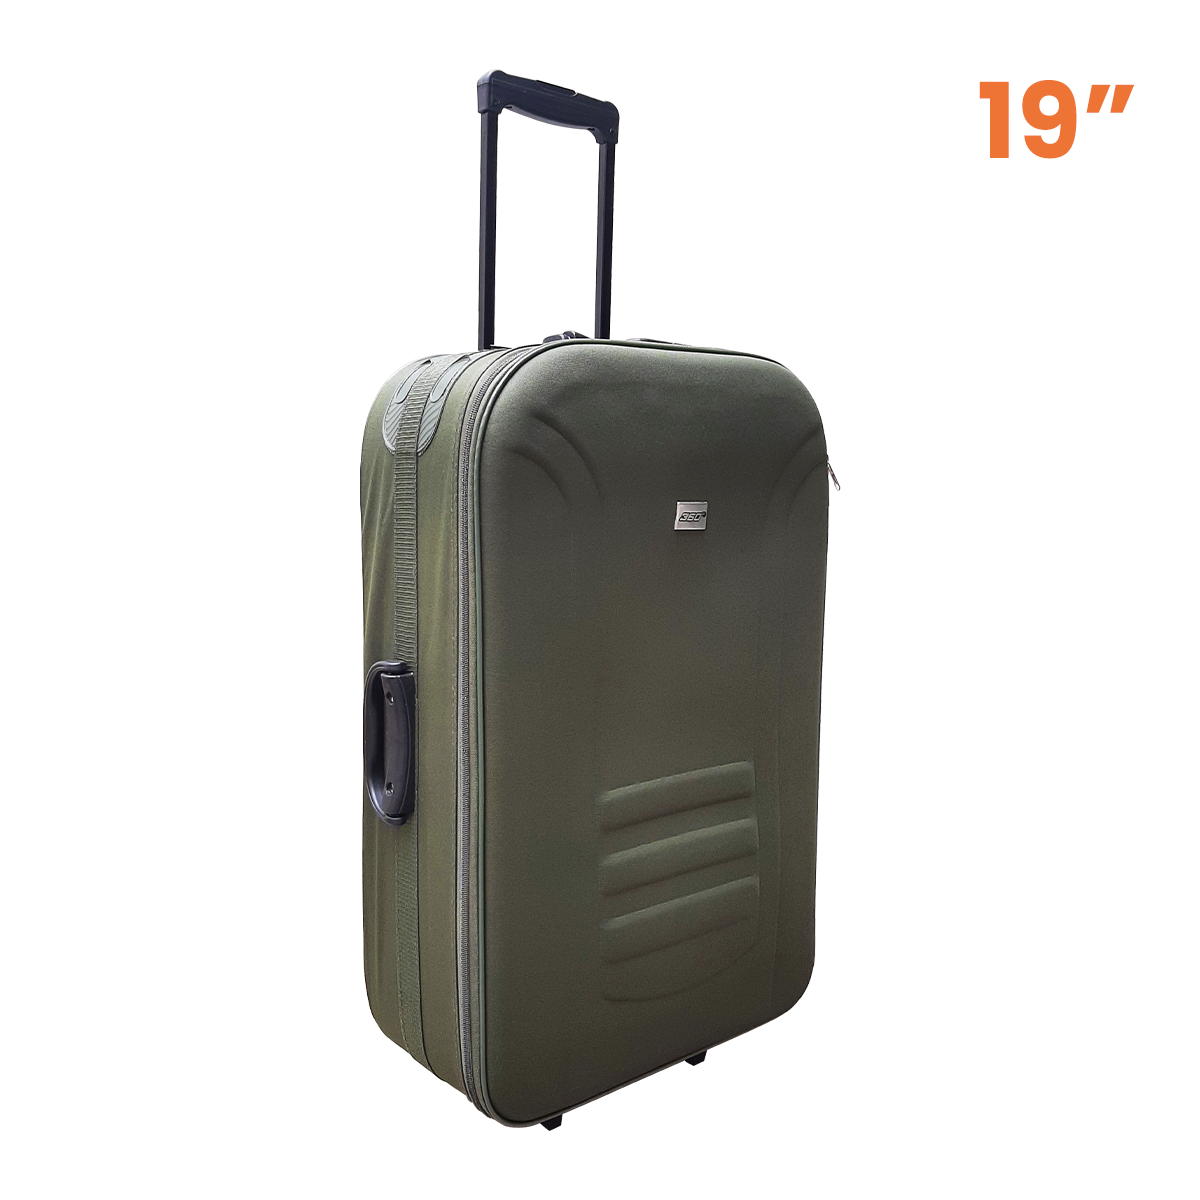 Green-Suitcase1